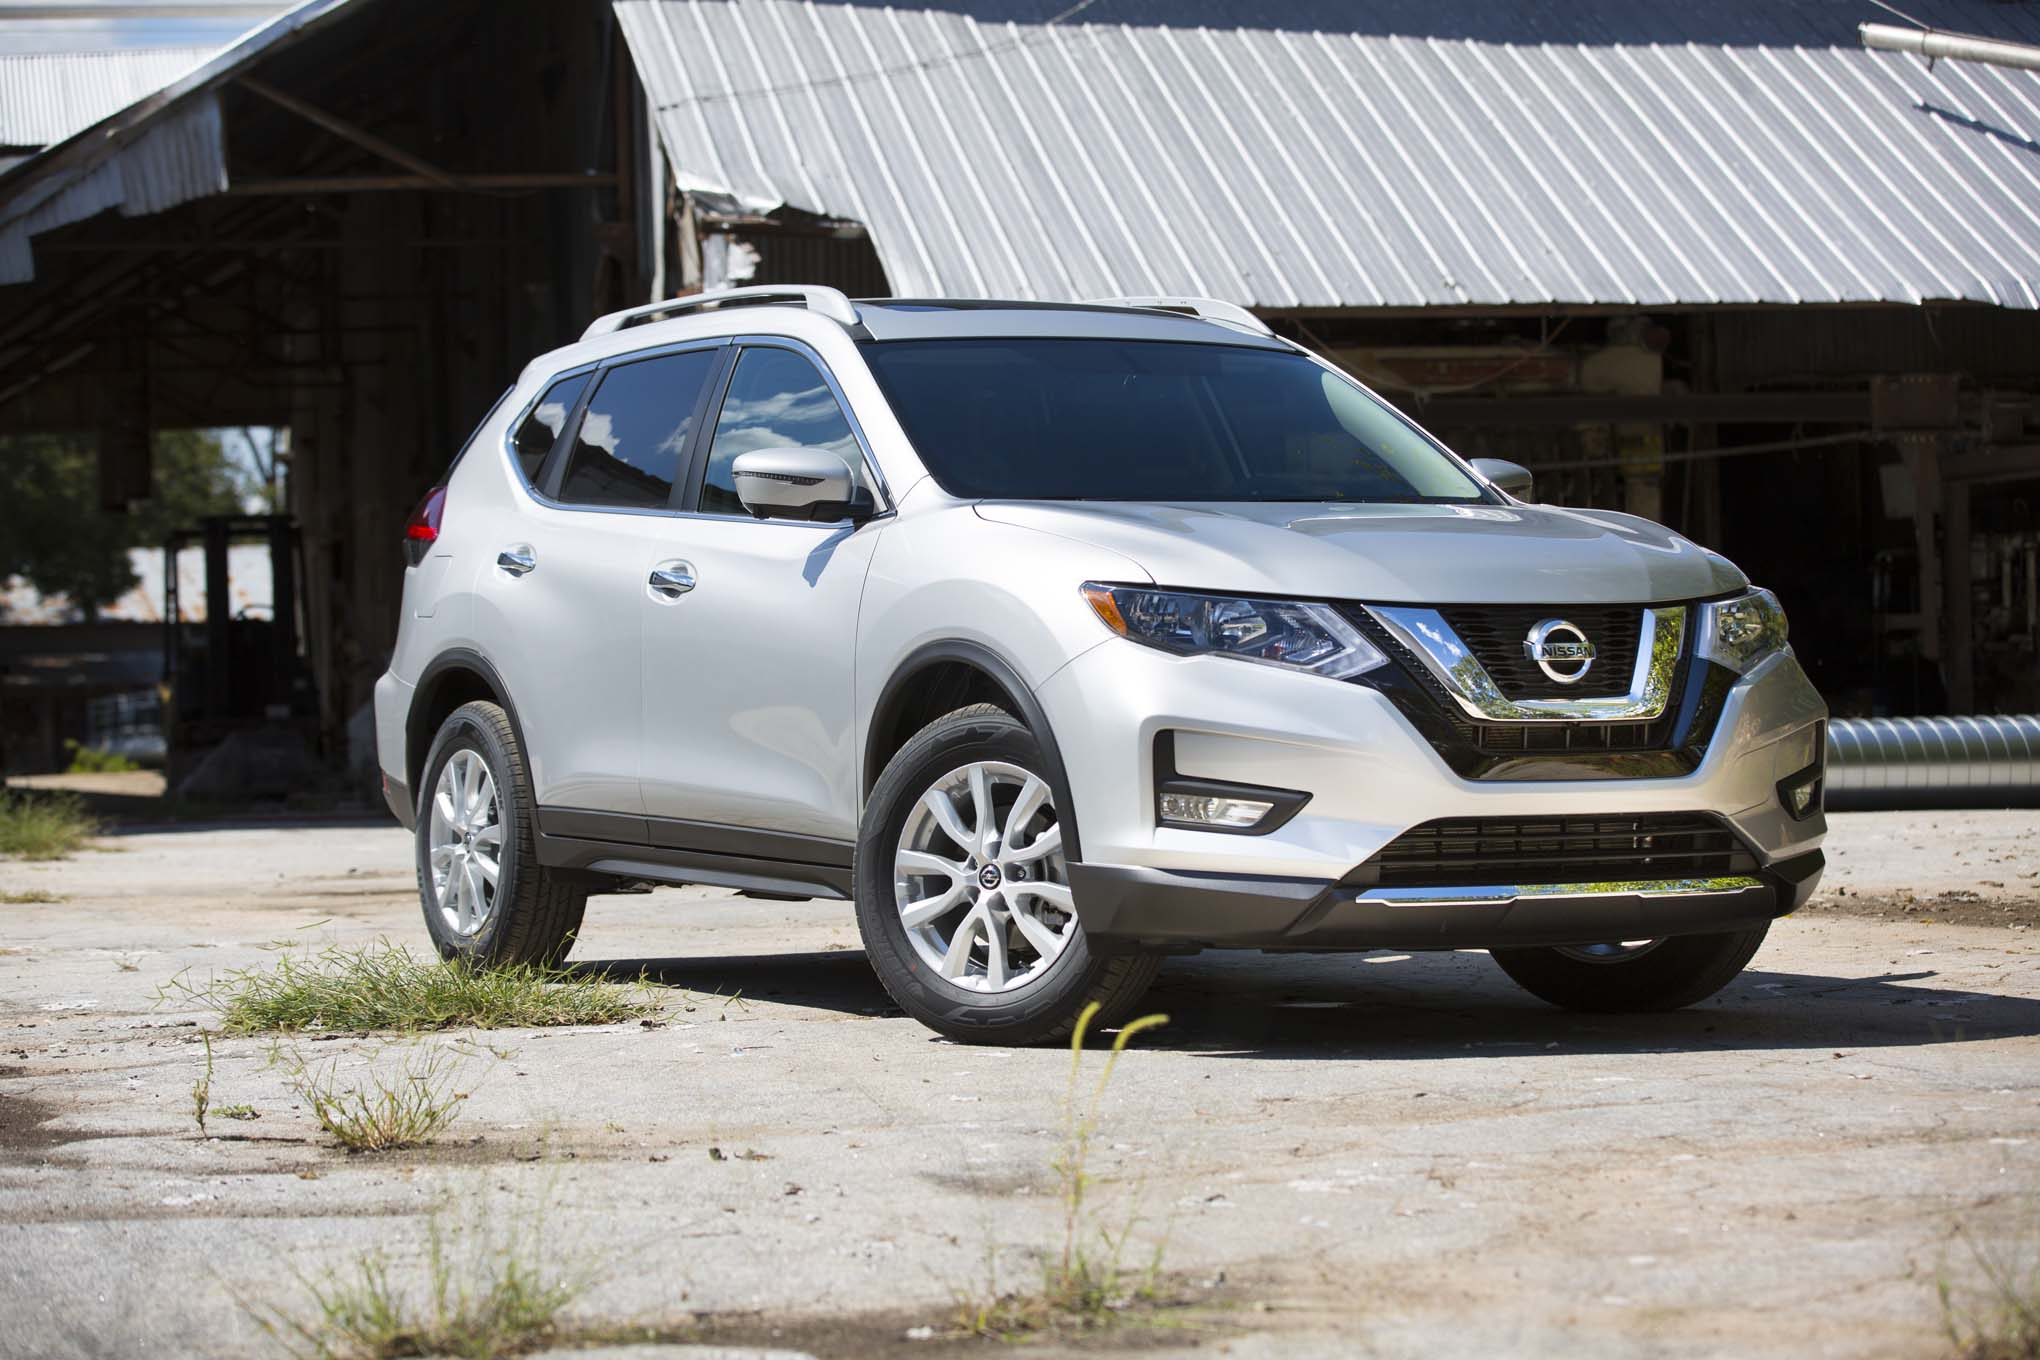 2017 Nissan Rogue Sl Awd Rear Three Quarter 01 Erick Ayapana